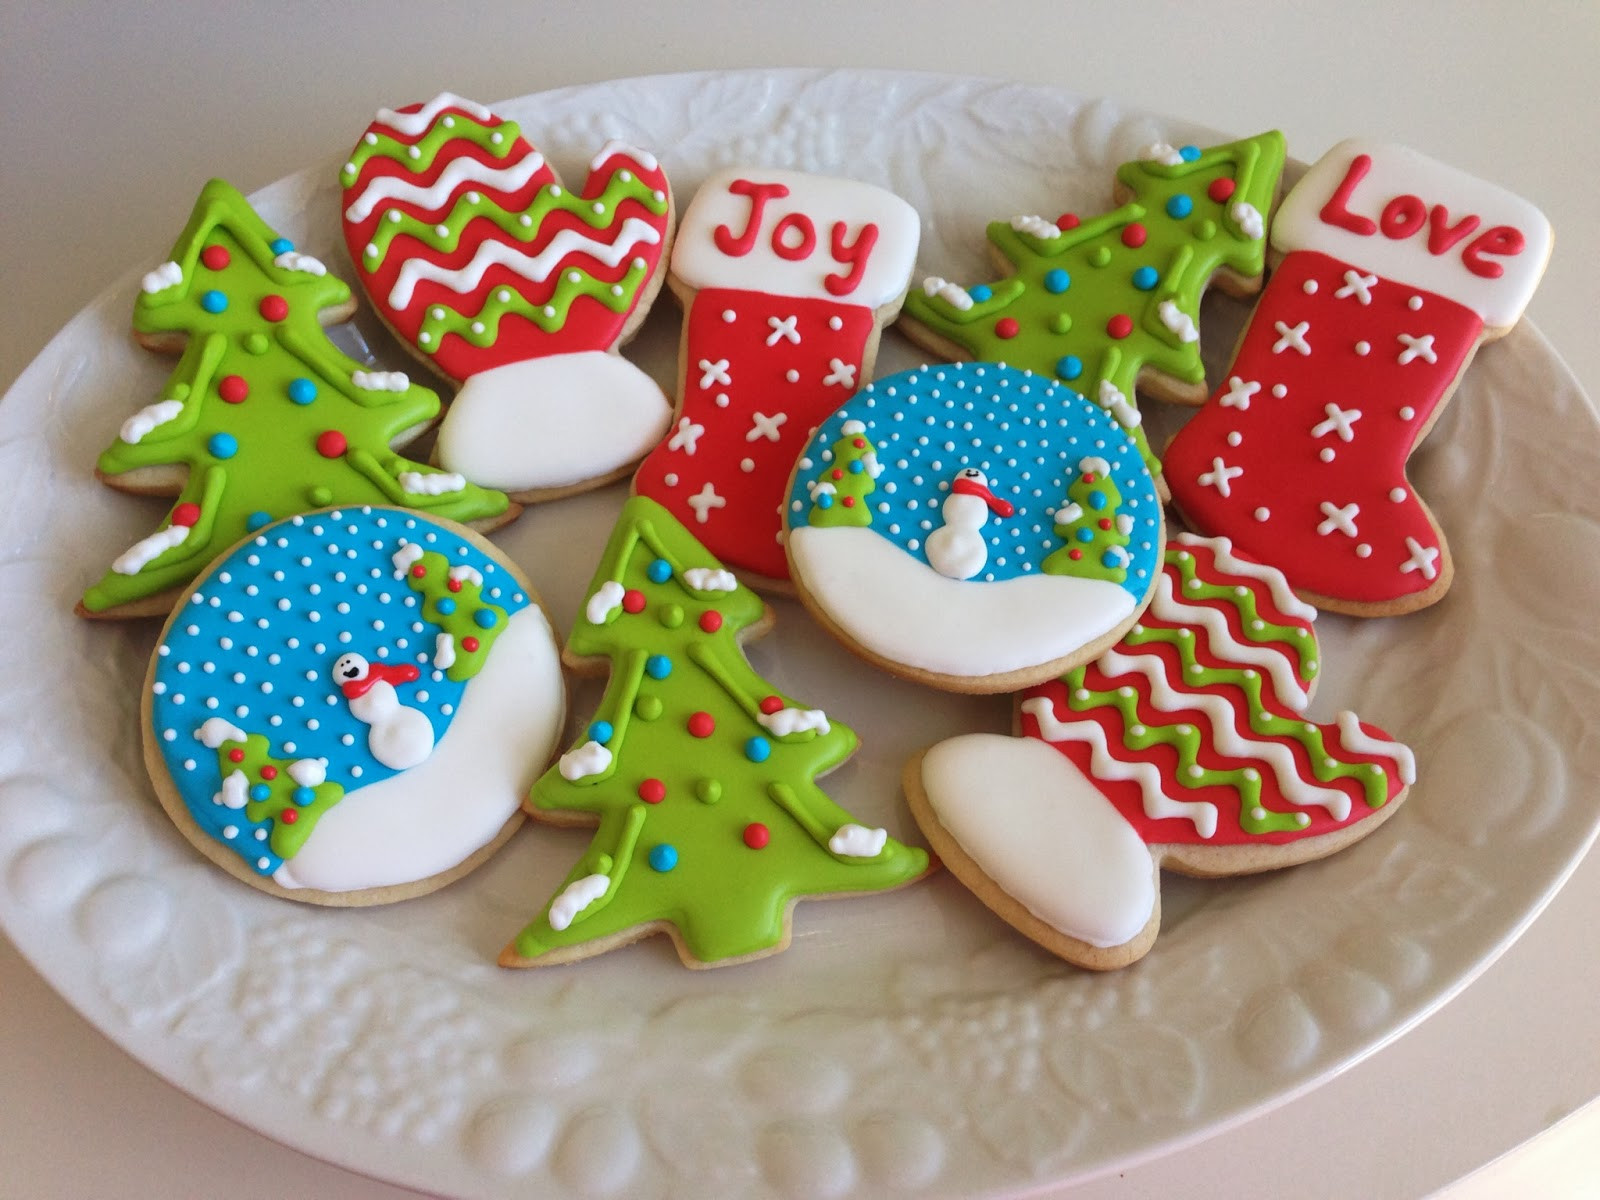 Cut Out Christmas Cookies  monograms & cake Christmas Cut Out Sugar Cookies with